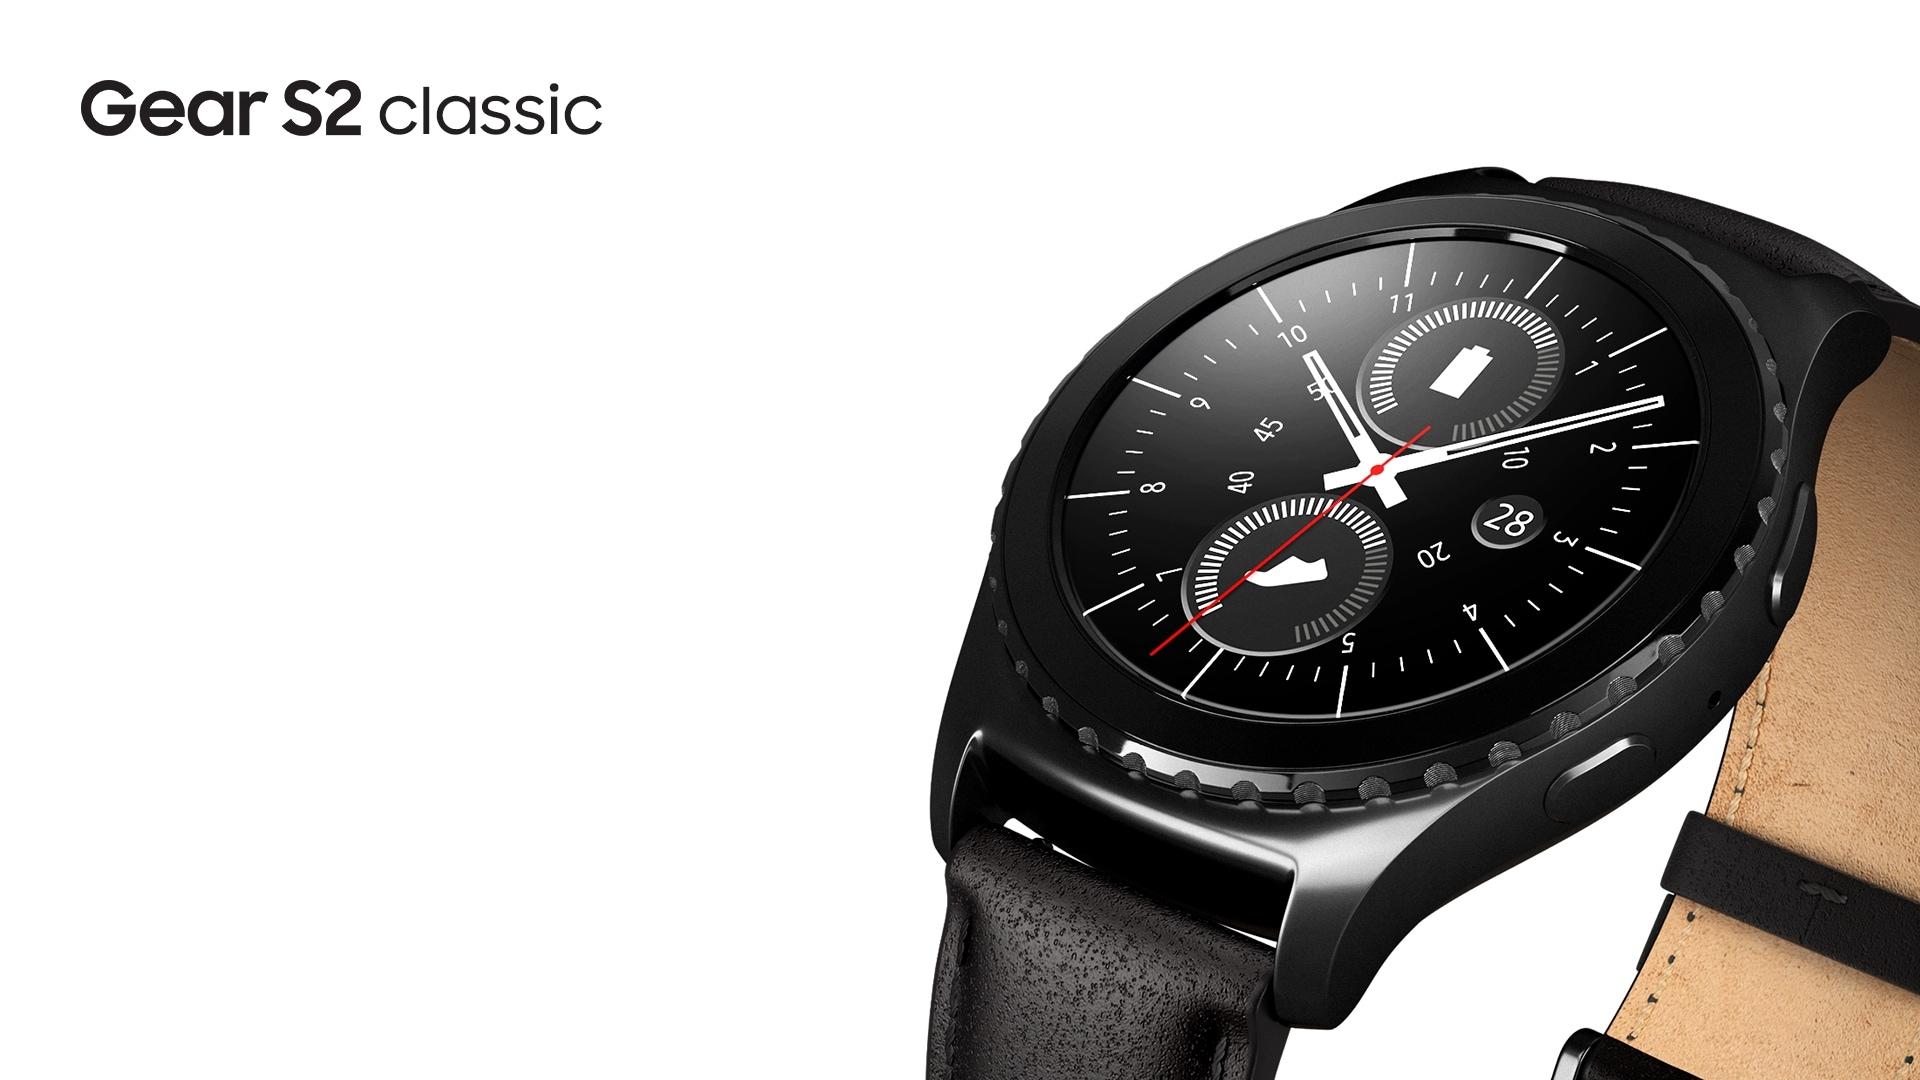 Faster, sleeker and ultra-convenient Gear S2 Classic